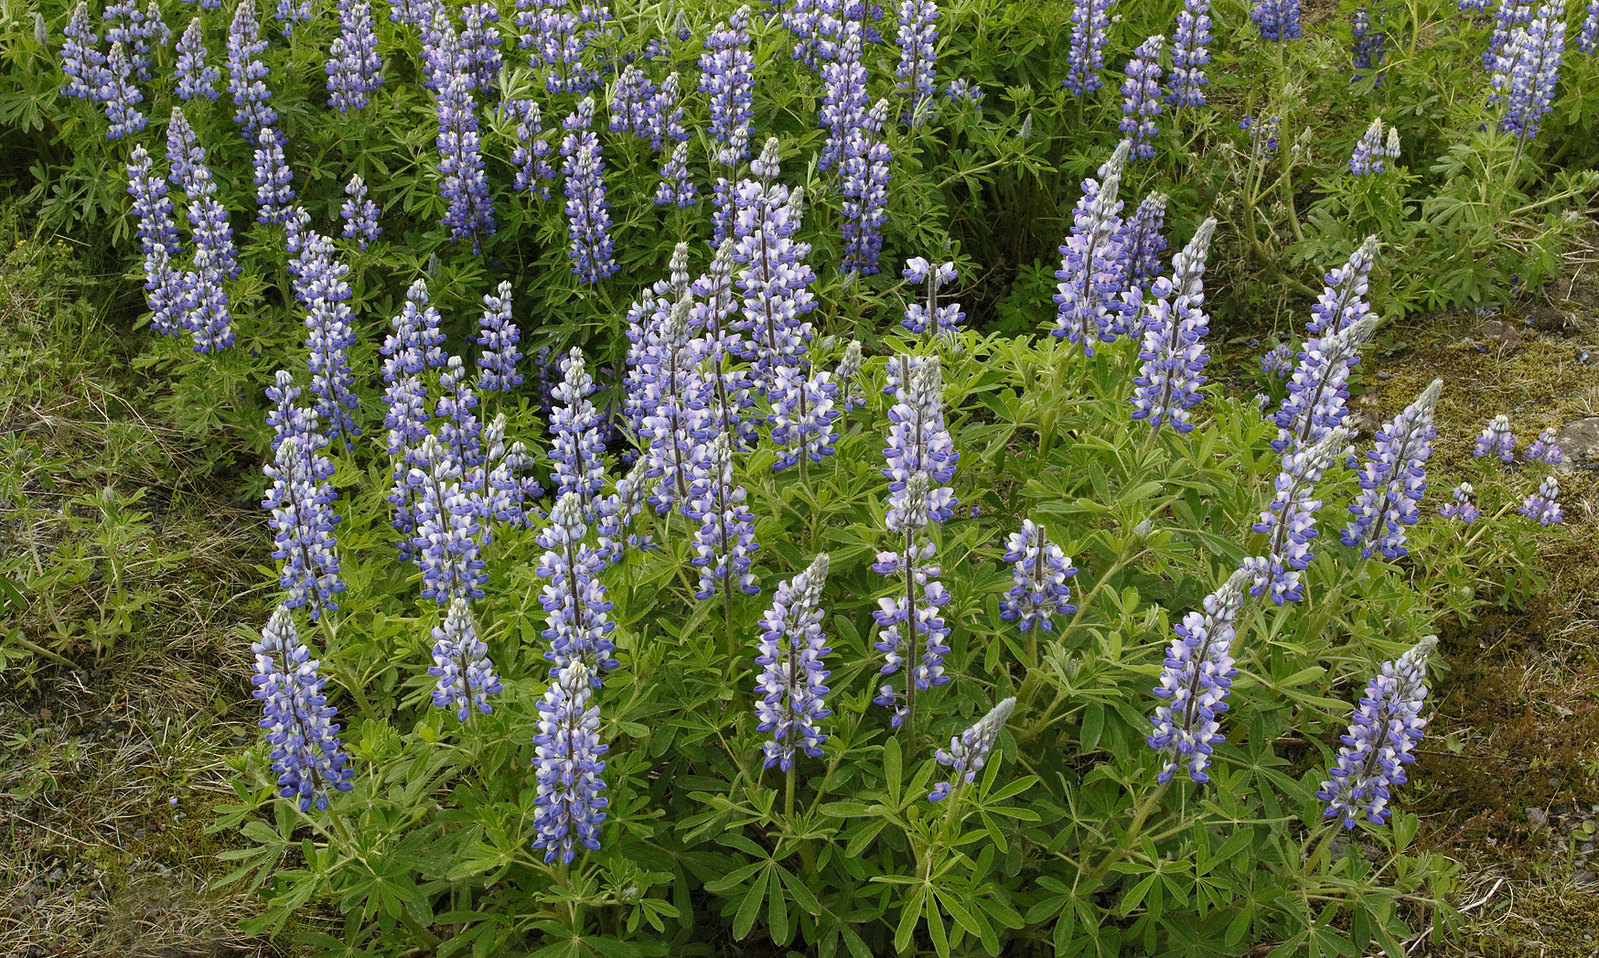 Lupins are everywhere!